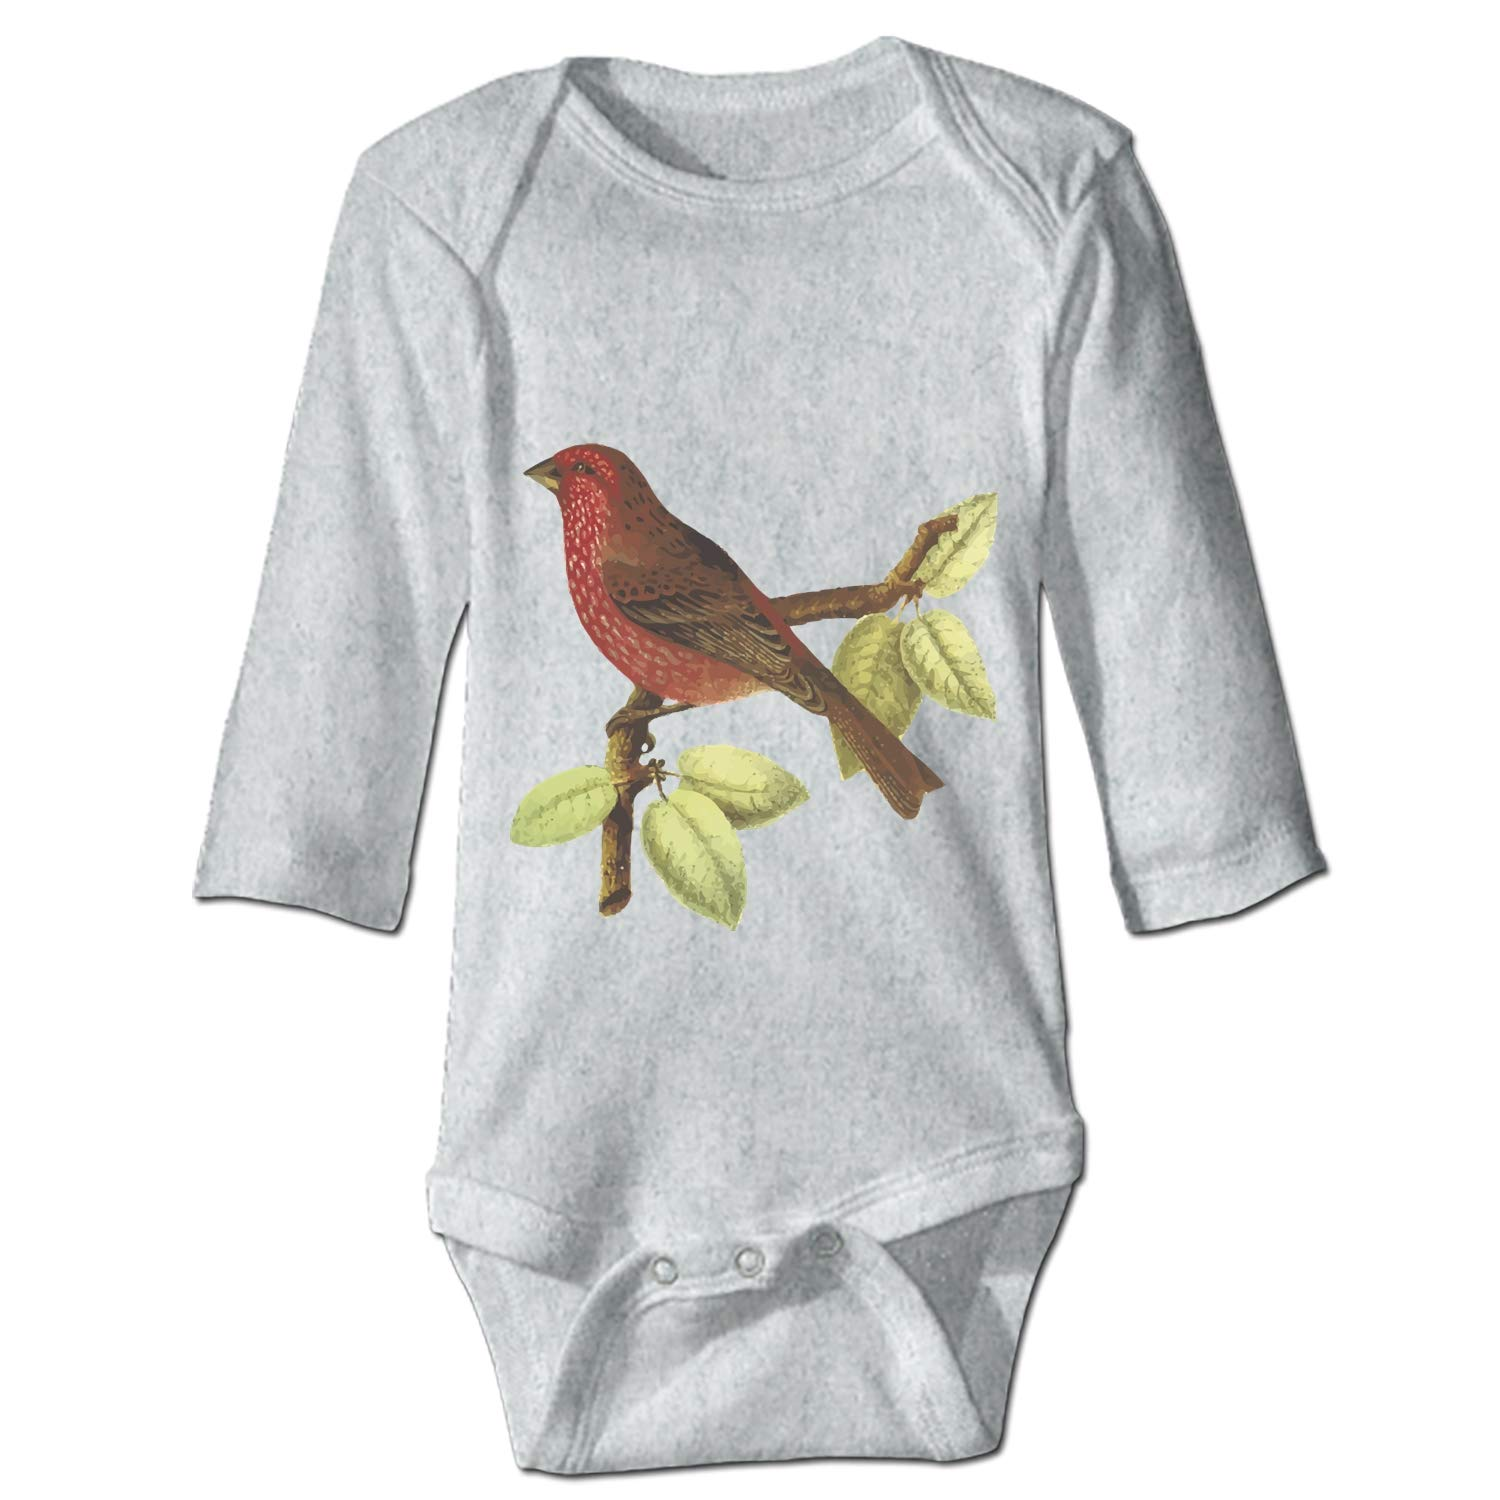 XASFF Turkey Baby Girl Casual Clothes Long Sleeve Onesies Romper Home Outfit